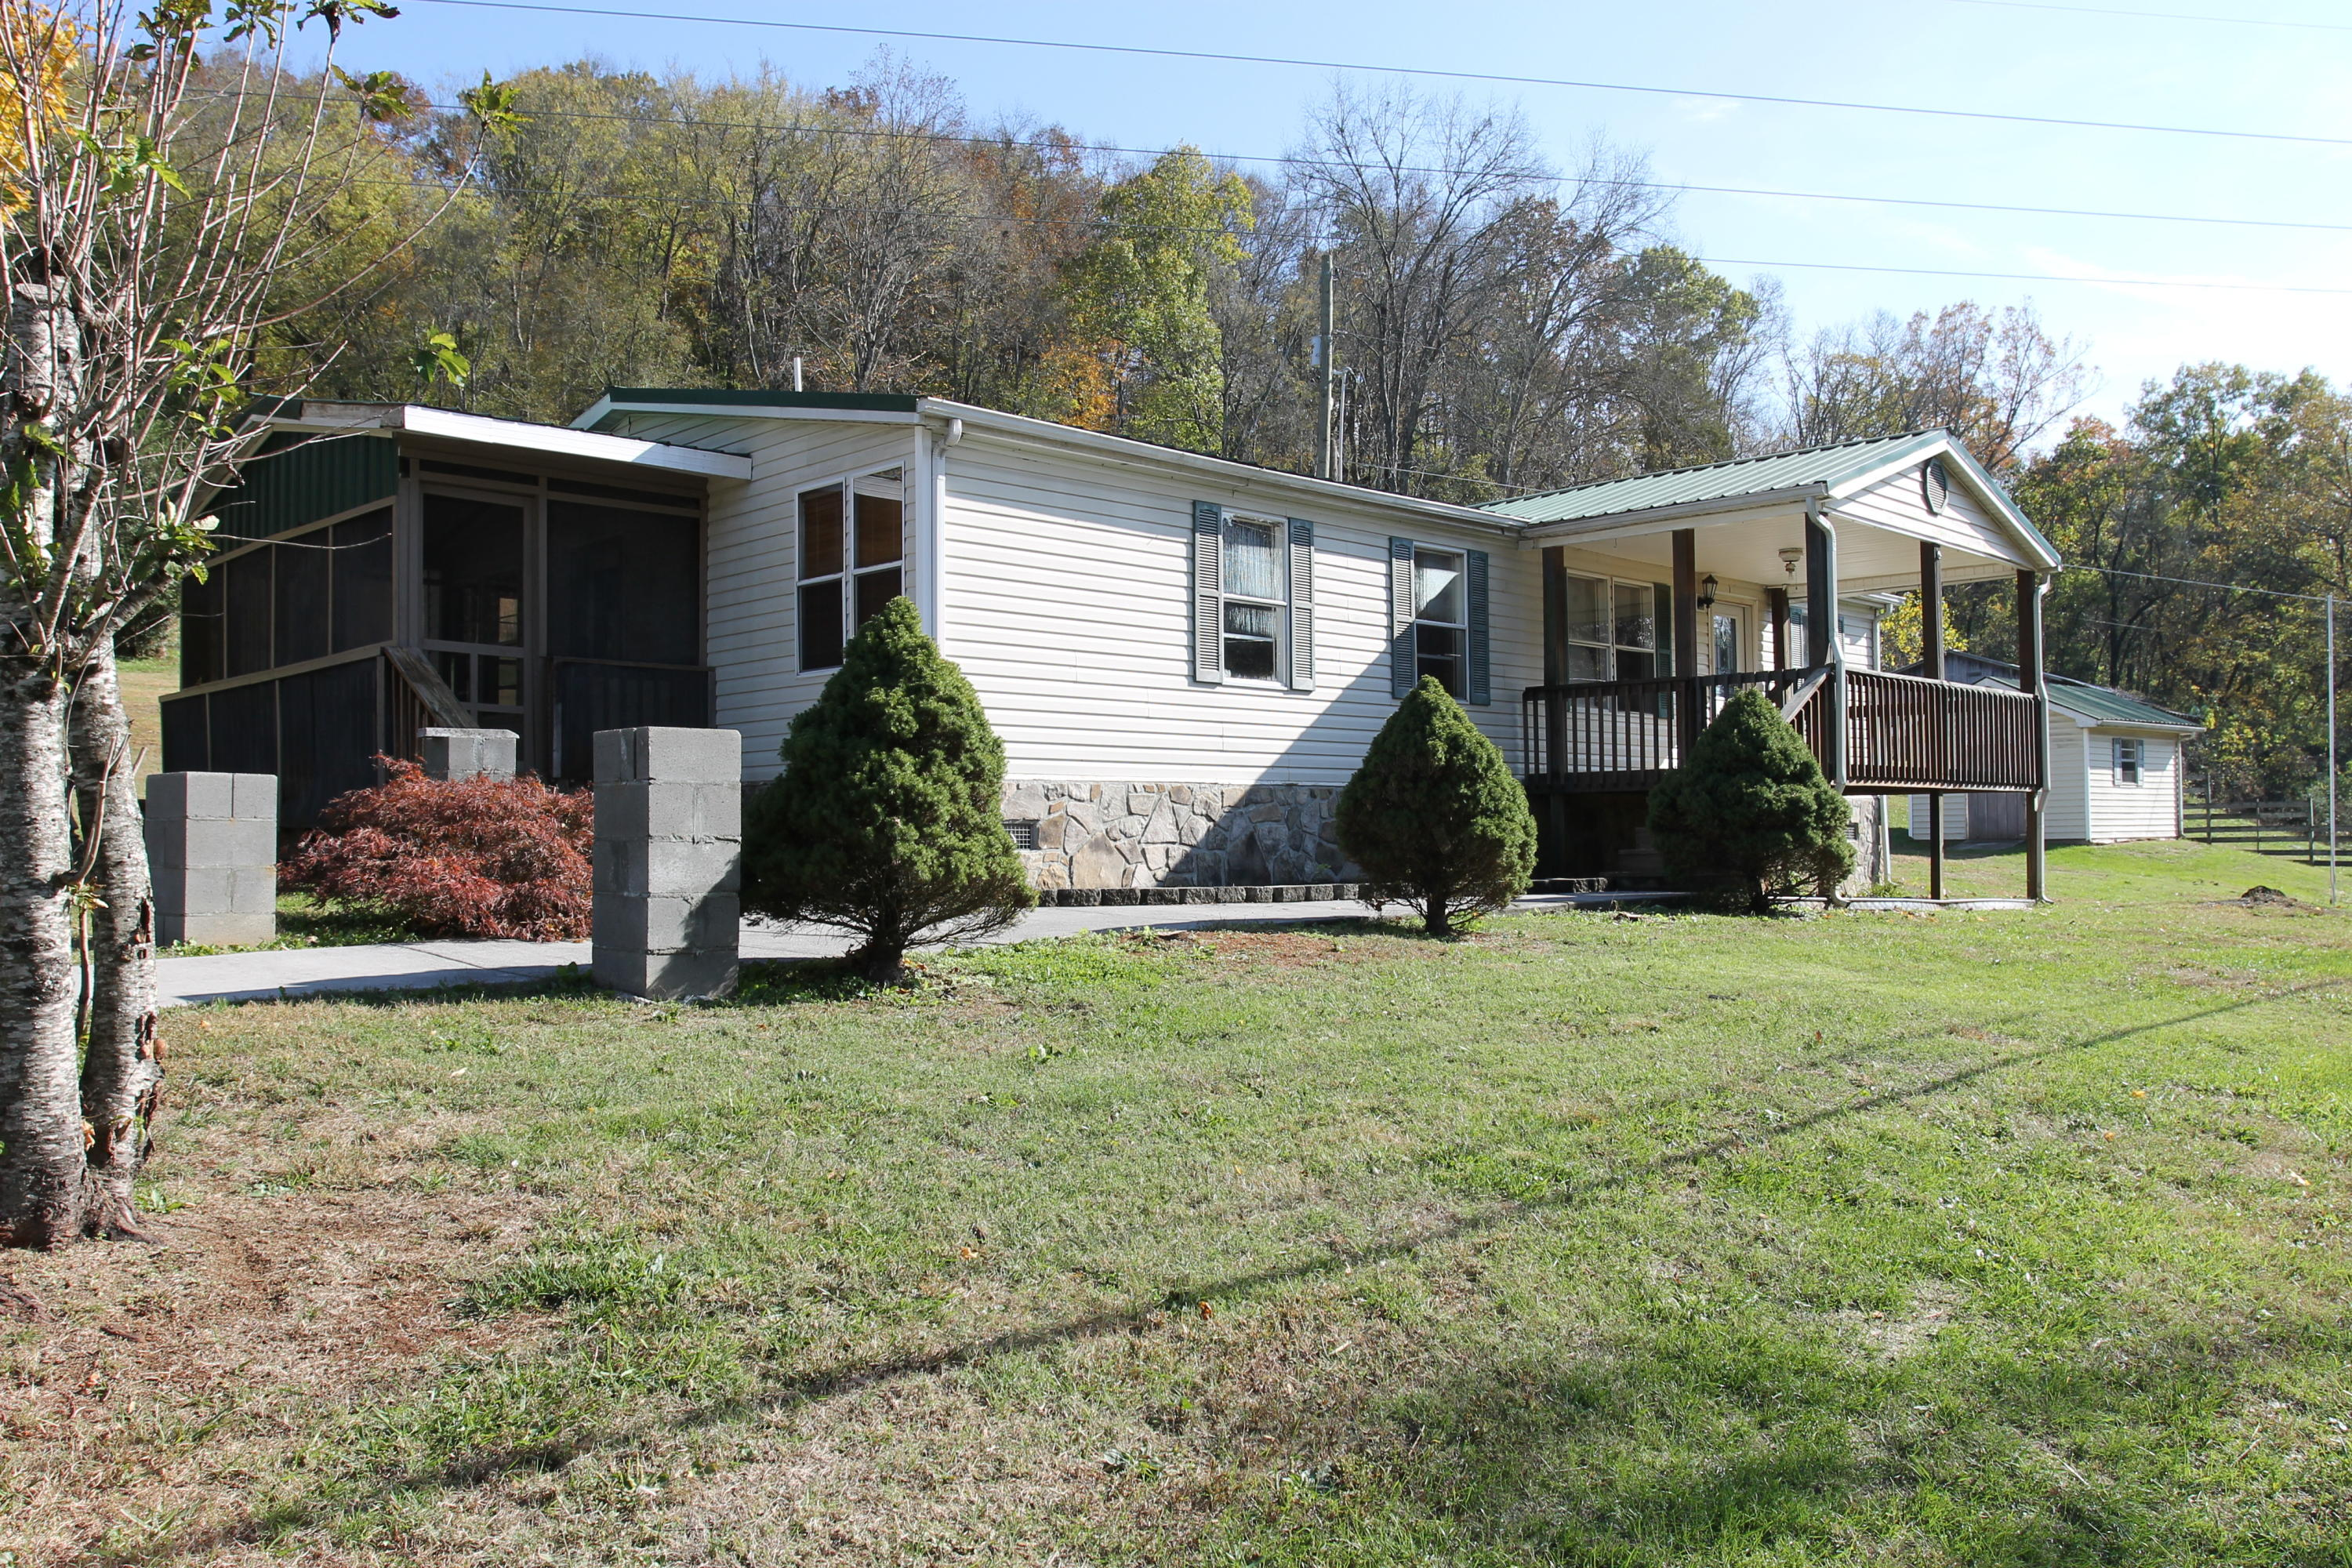 1702 Governor John Sevier, Knoxville, Tennessee, United States 37920, 3 Bedrooms Bedrooms, ,2 BathroomsBathrooms,Single Family,For Sale,Governor John Sevier,1100270